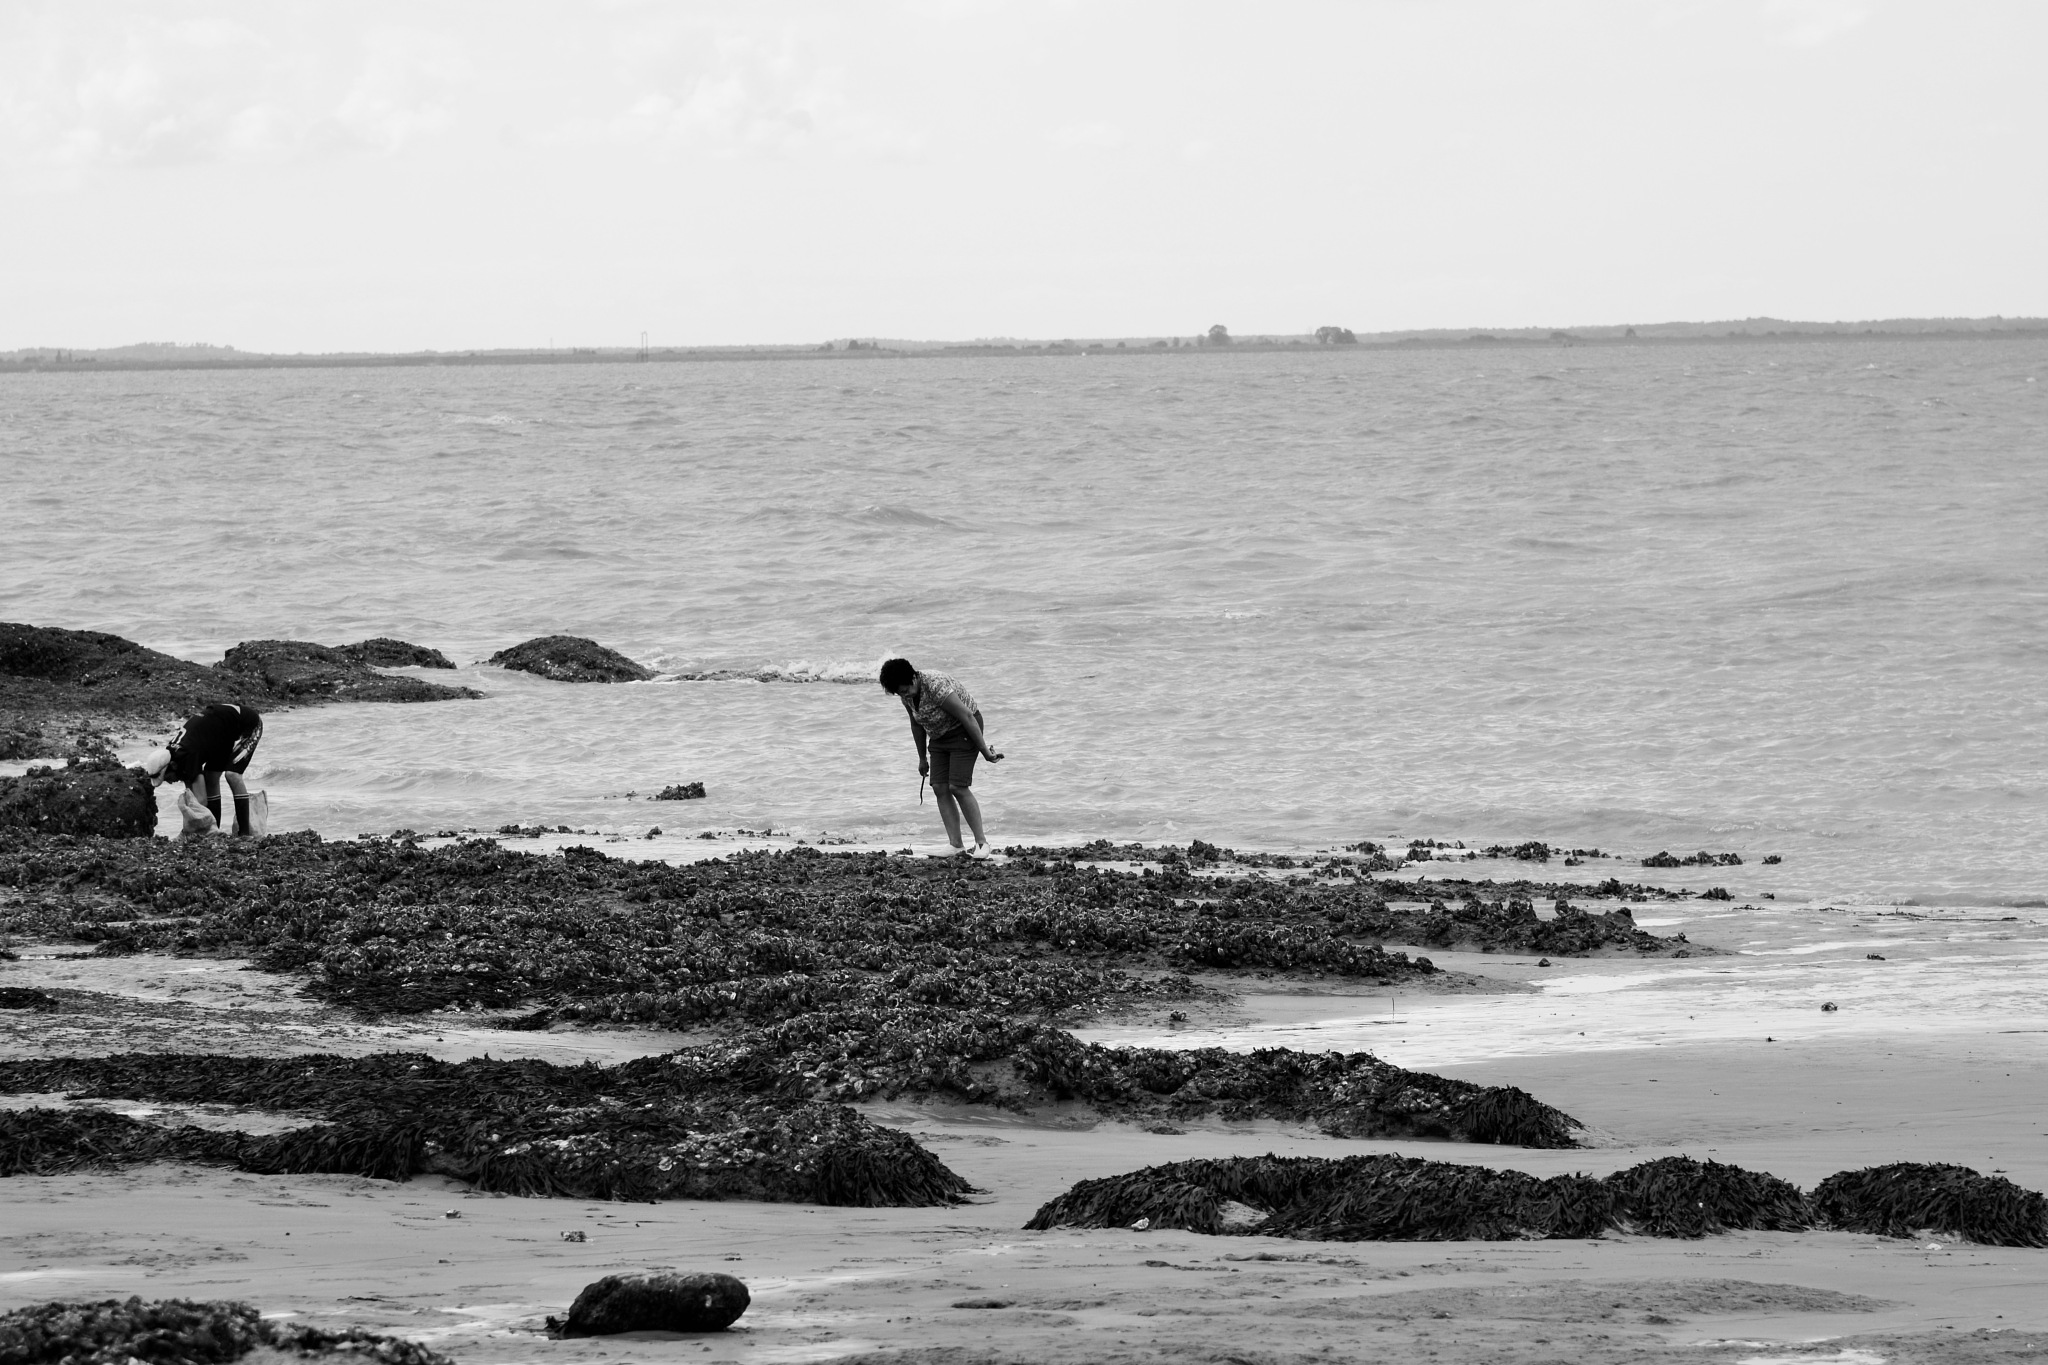 Shellfish gathering at extra low tide! by alison16